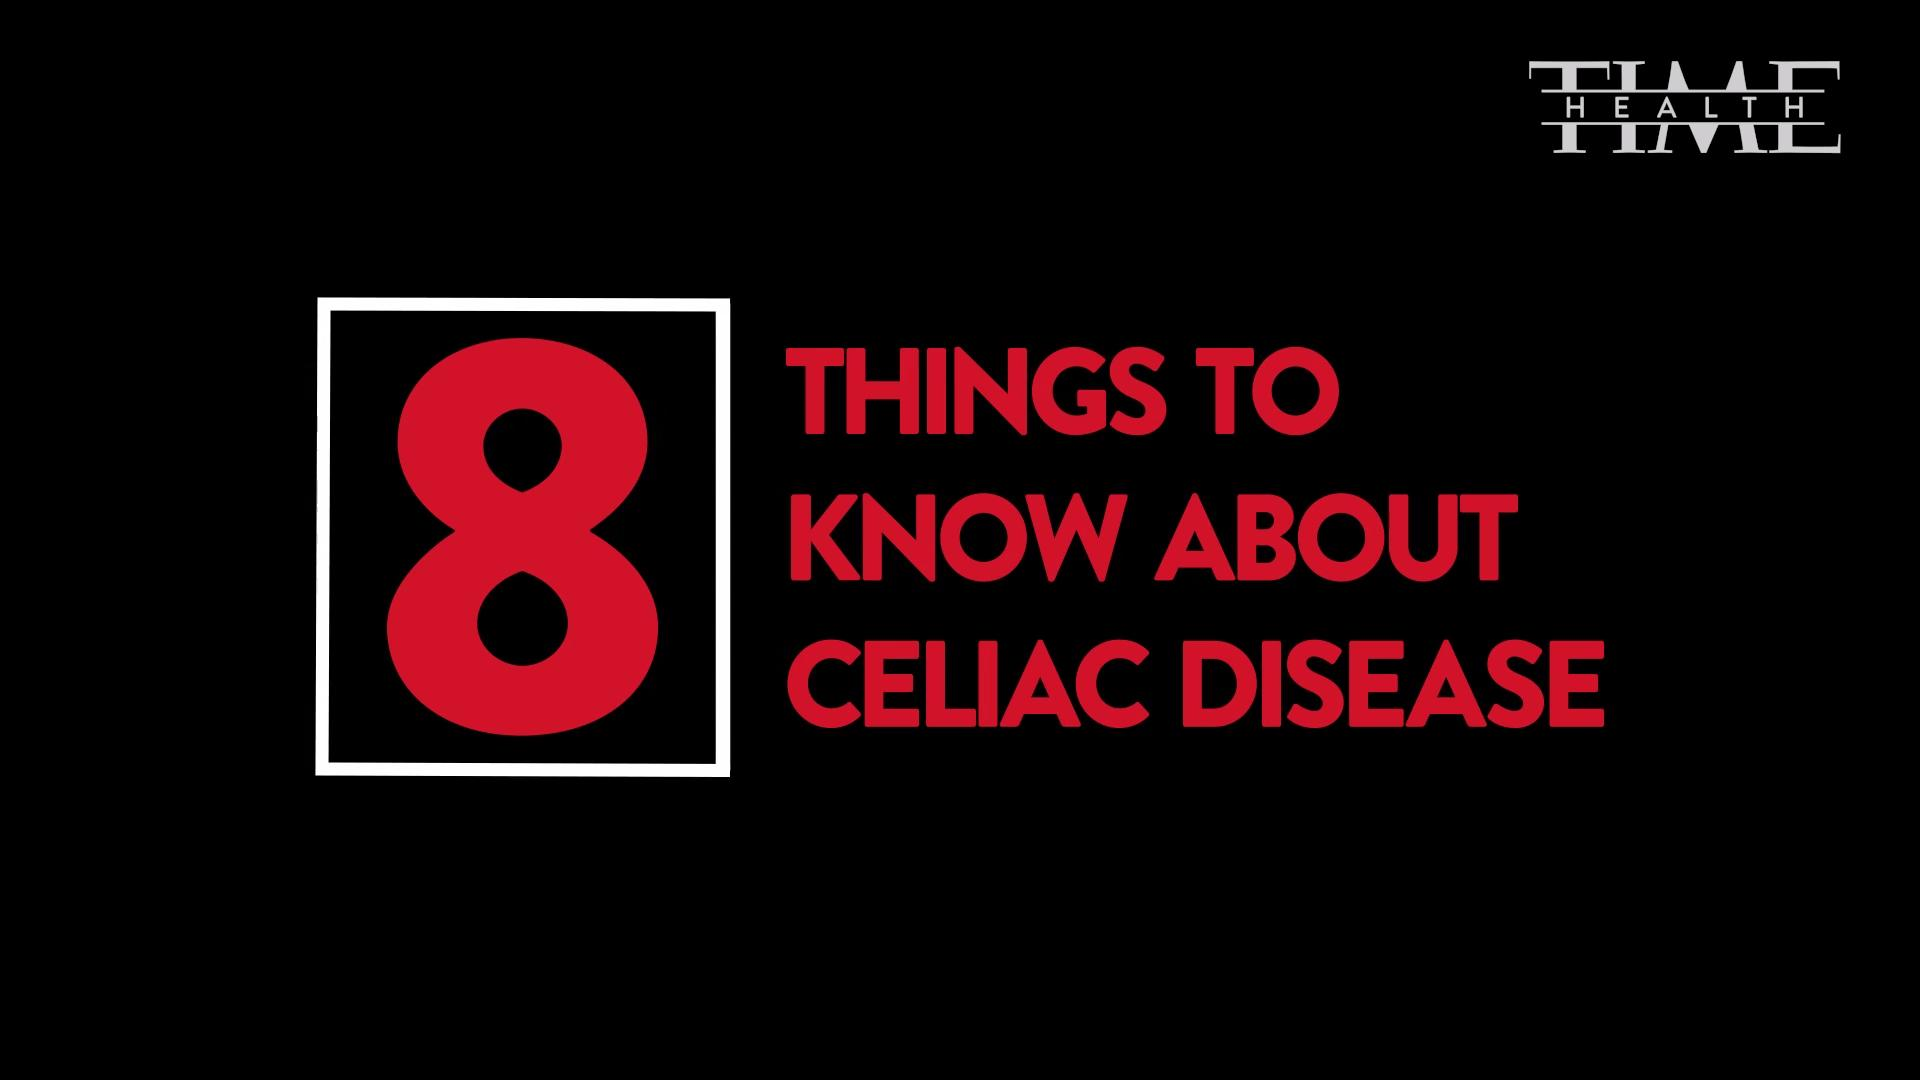 Facts about celiac disease